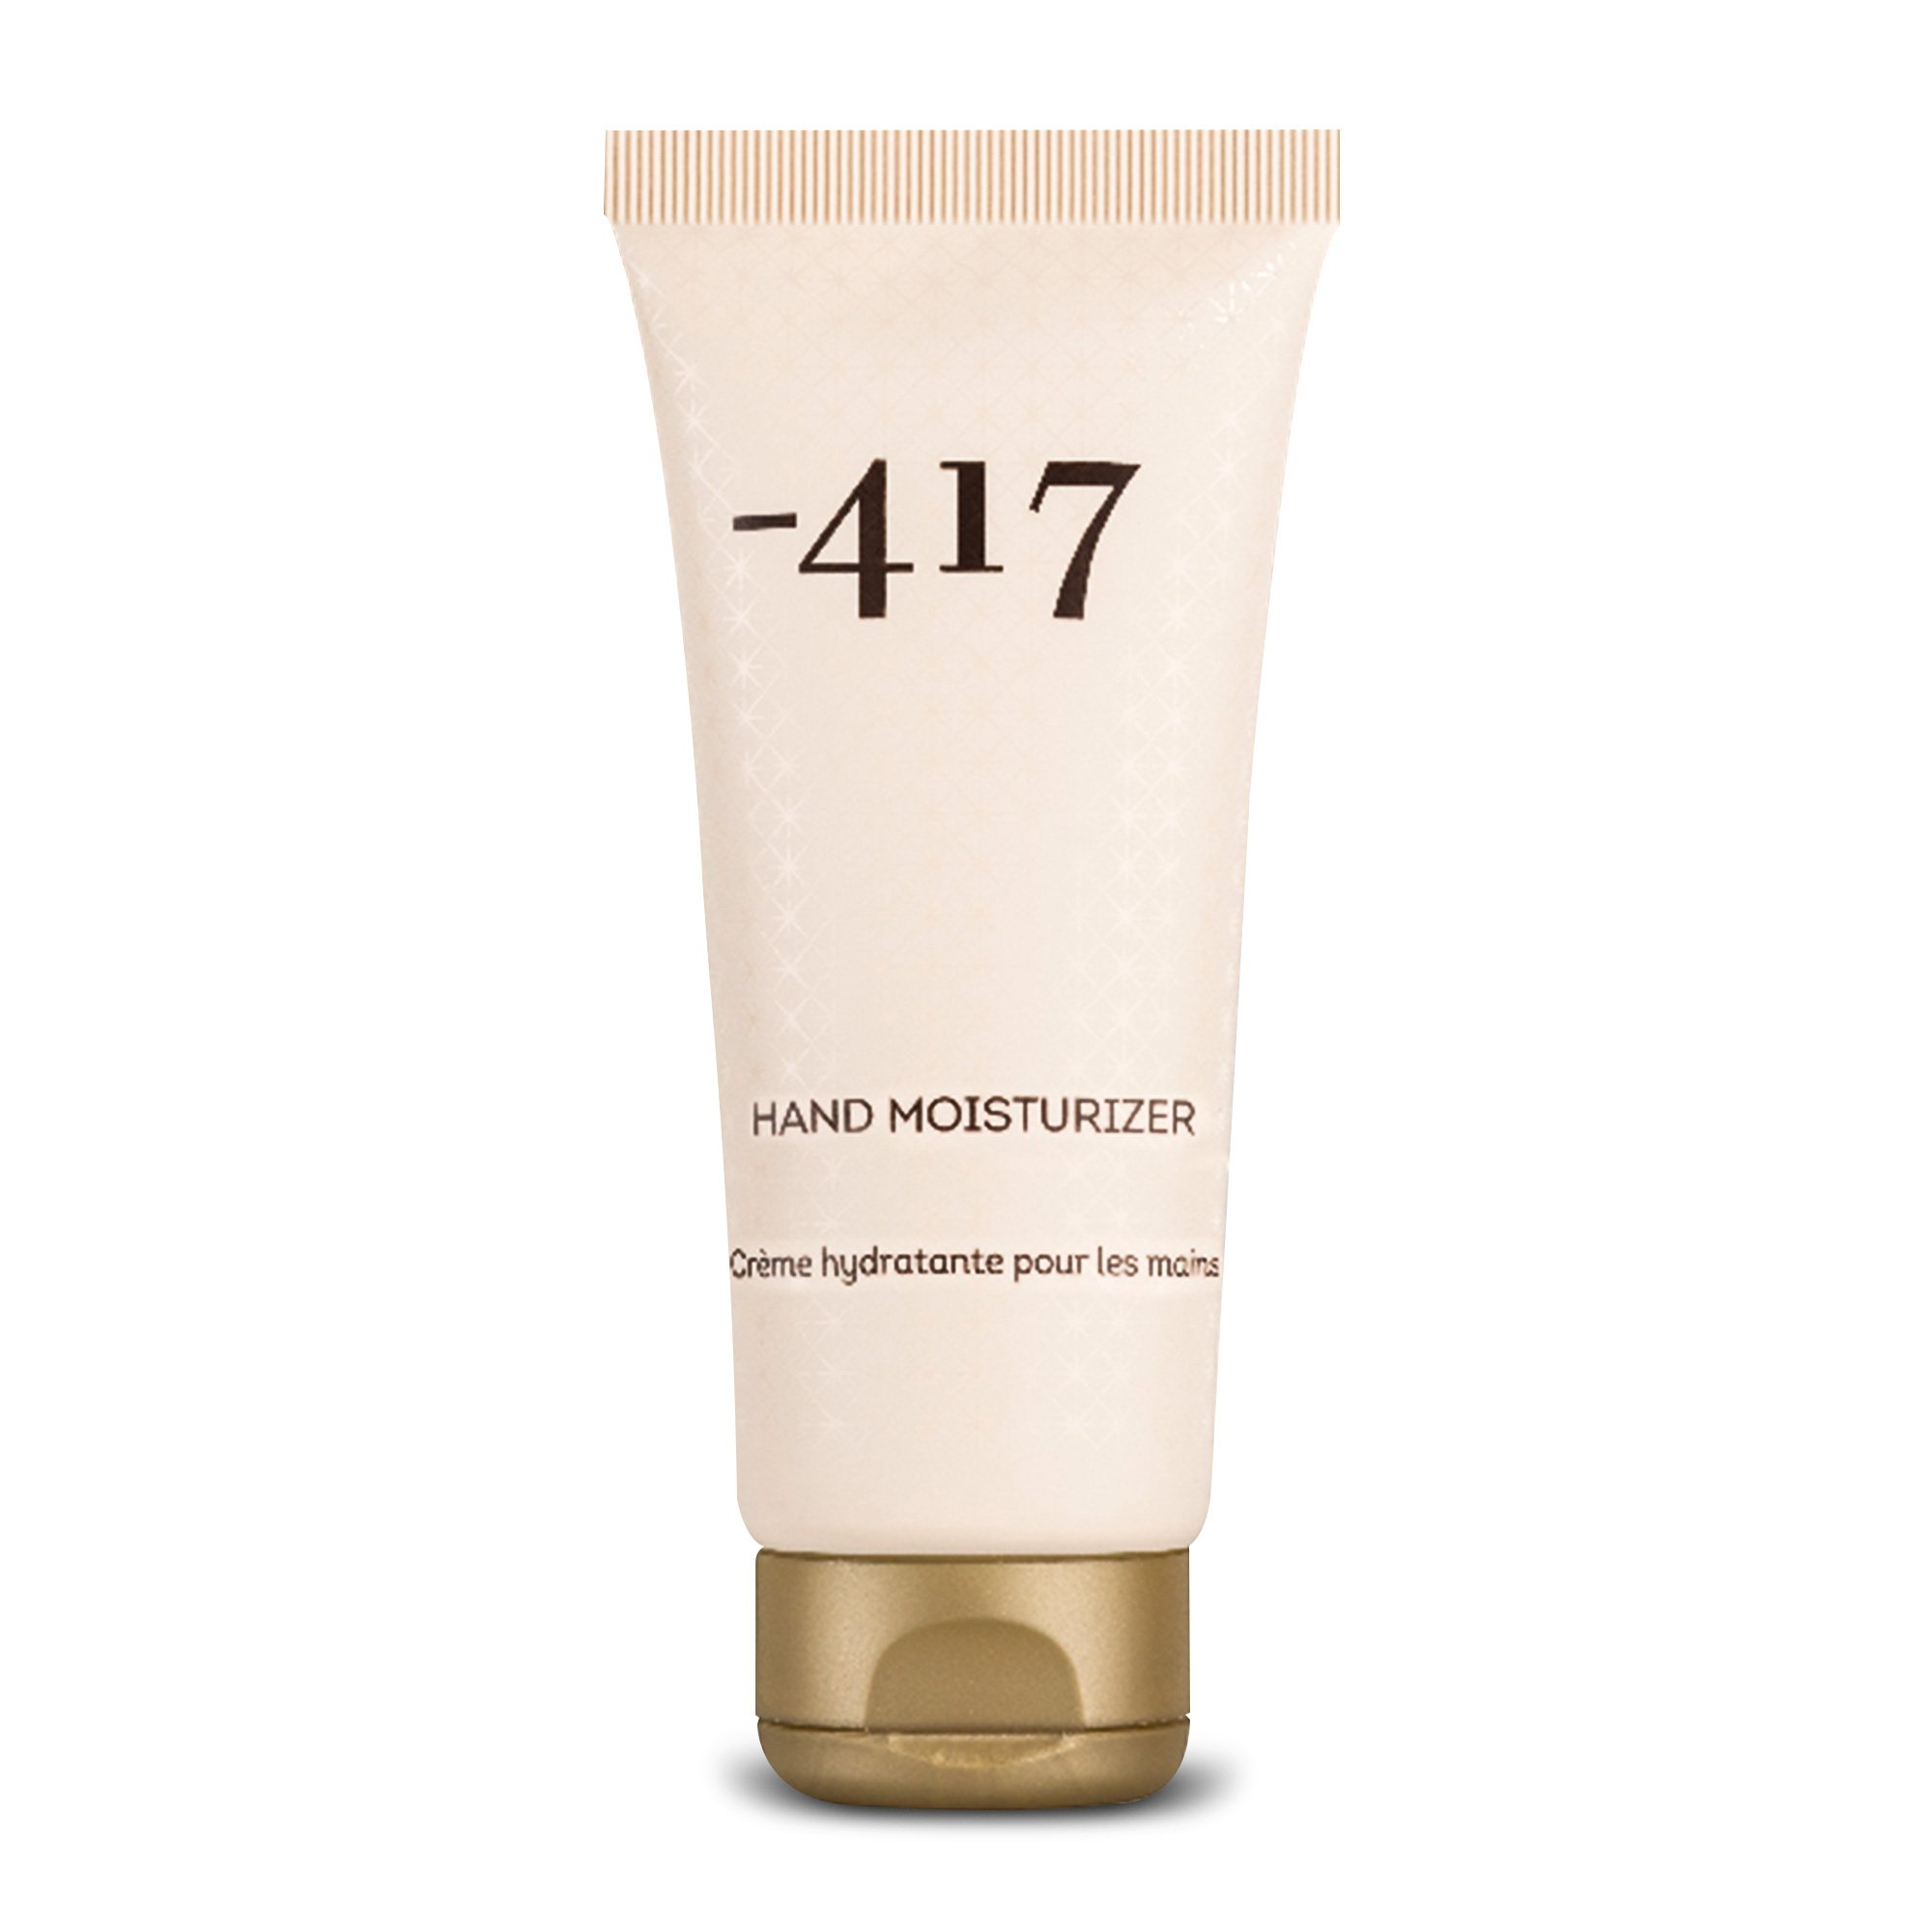 -417 Anti Aging Hand Cream For Dry, Cracked Skin & Working Hands features Essential Vitamins & Oils From The Dead-Sea, Say Yes To Silky Smooth Hands With Our Hand Moisturizer!